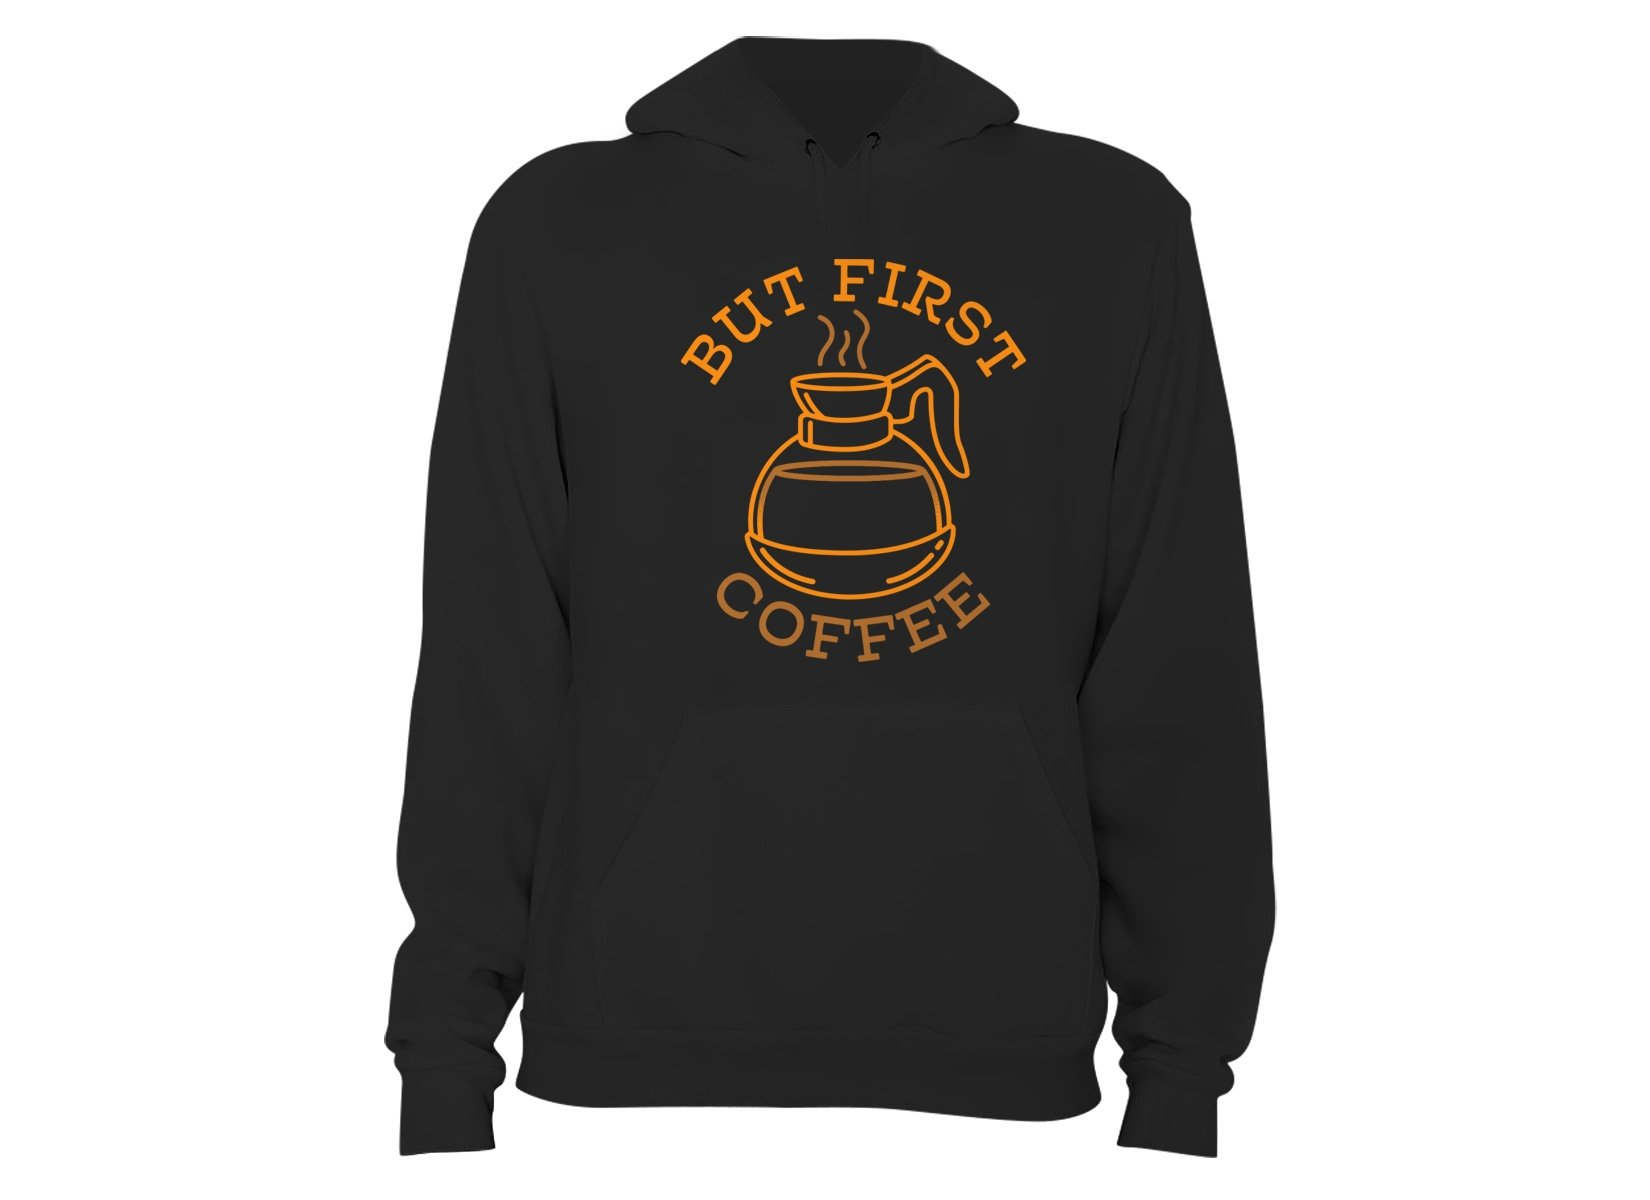 But First Coffee on Hoodie